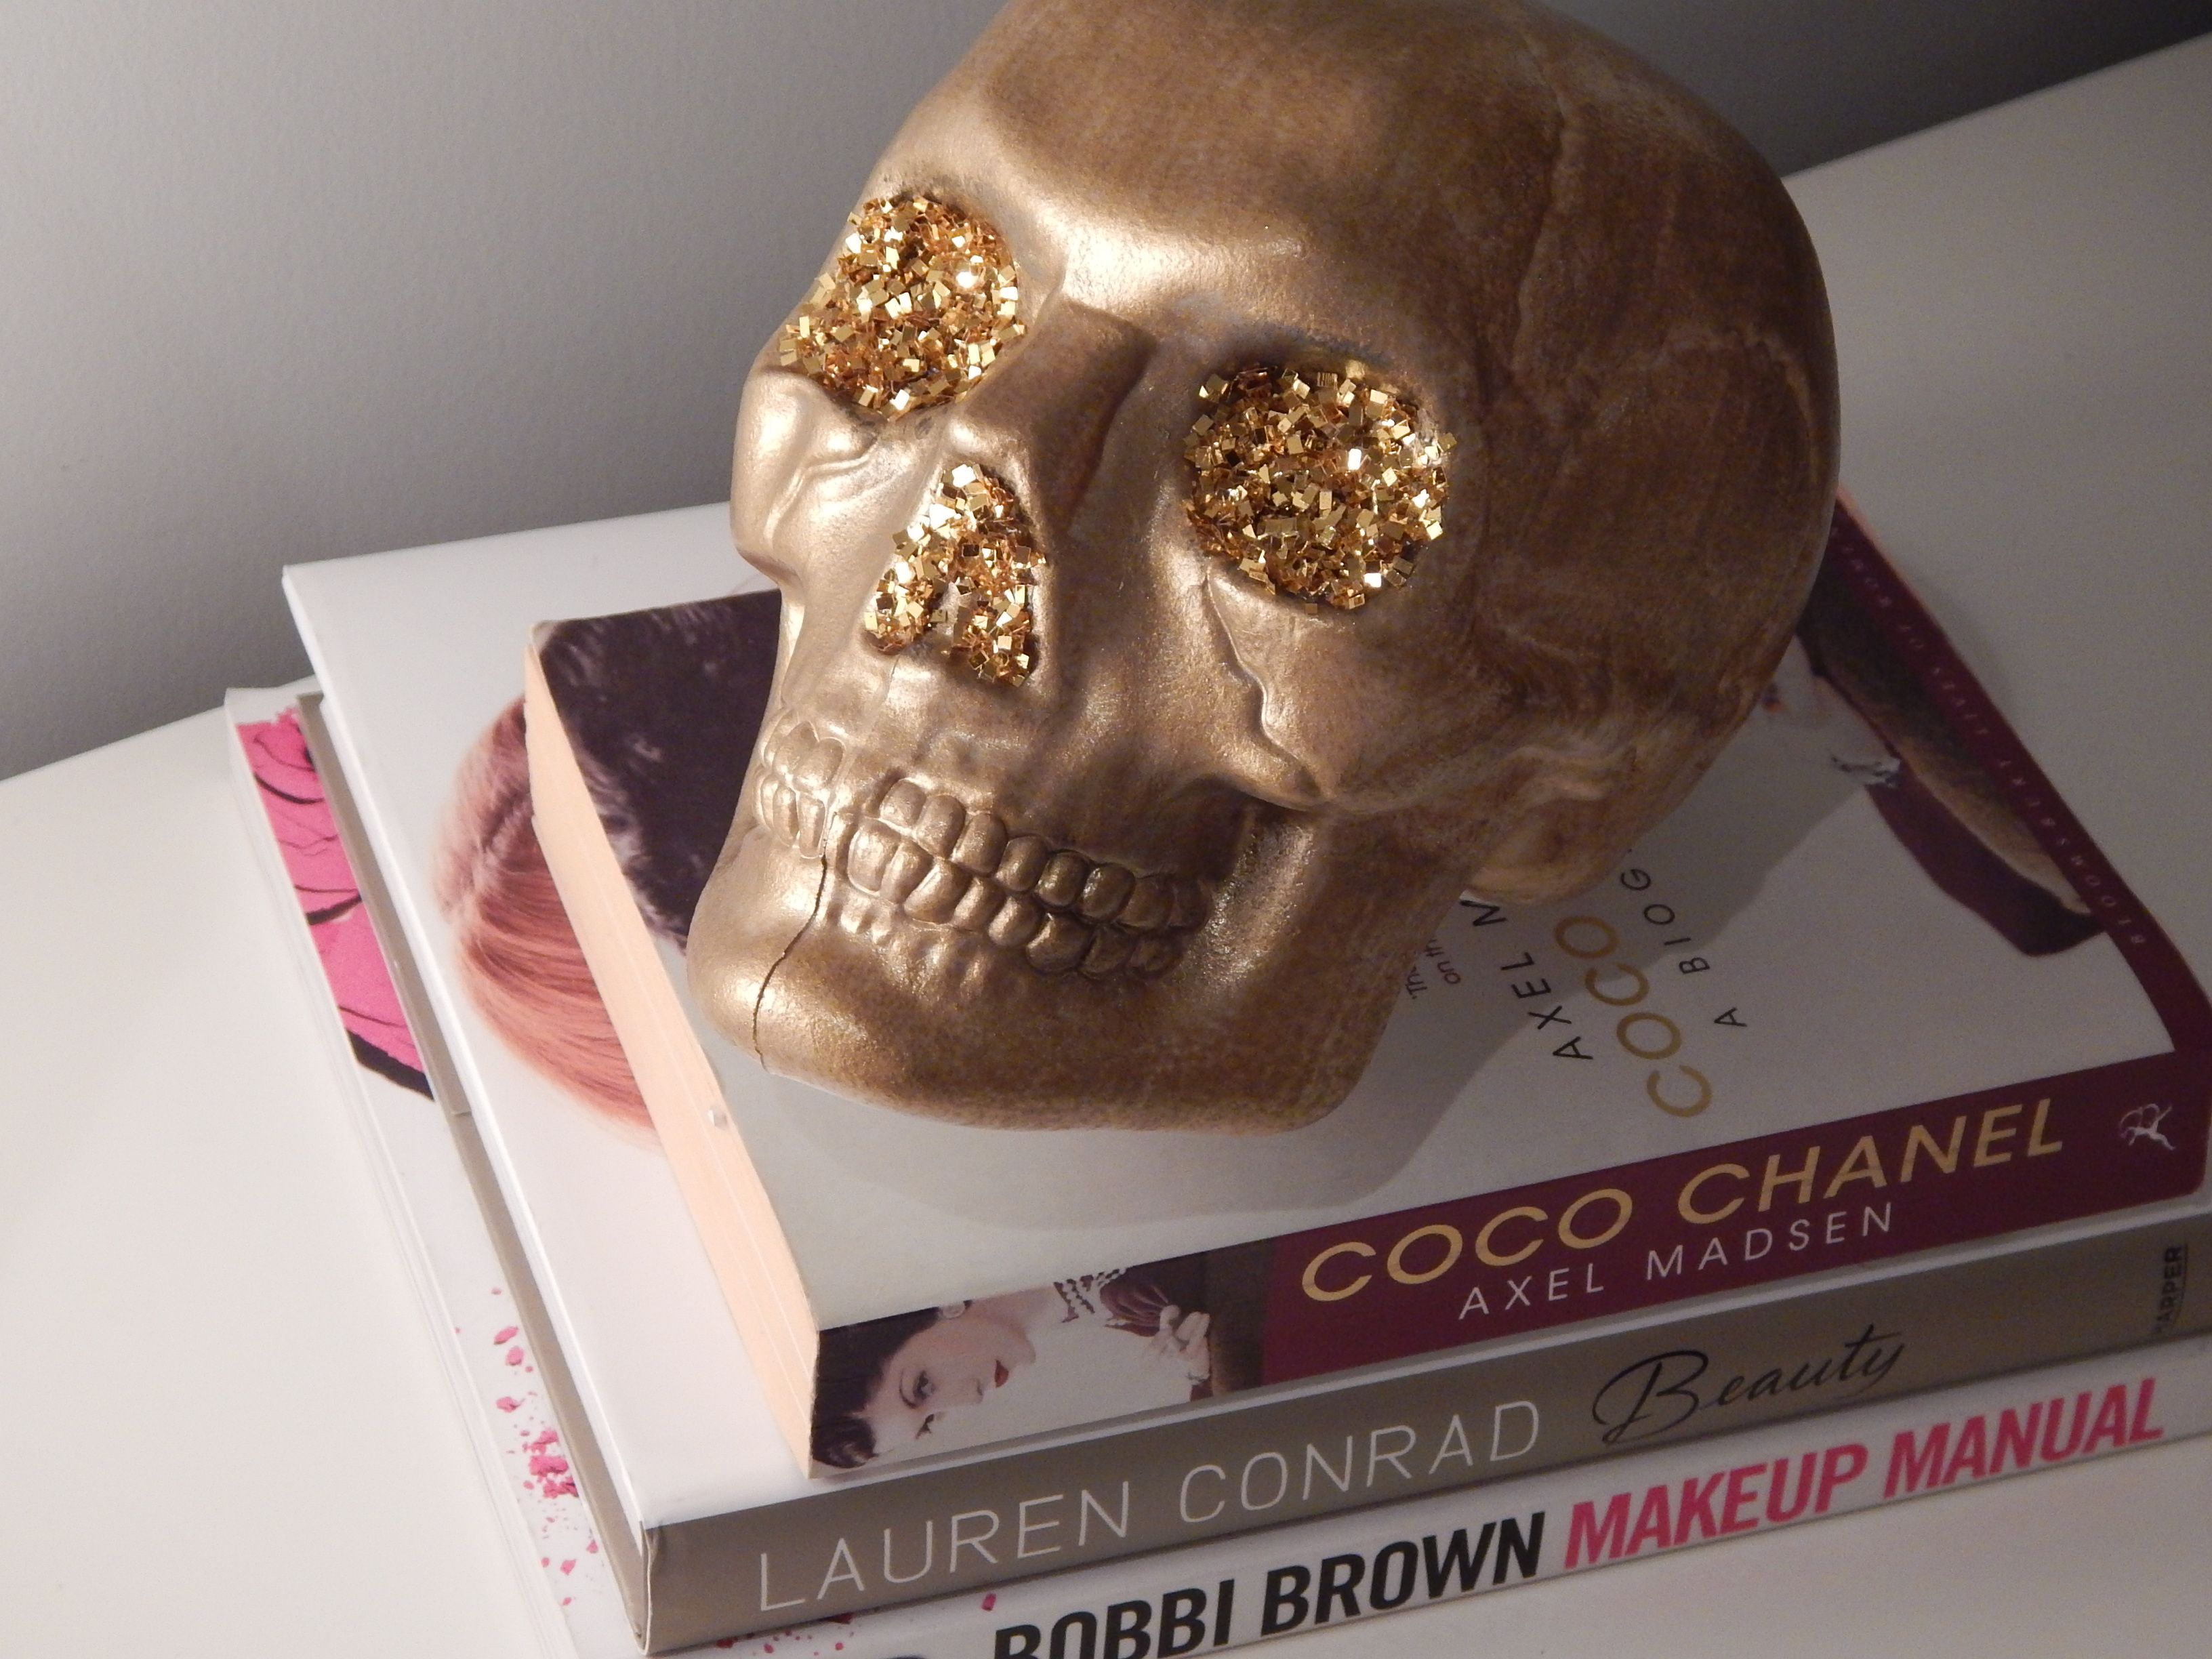 Since I Have Been Seeing Gold Ceramic Skull Decor All Over The Internet And Blogs Lately Thought Would DIY My Own Just Cant Bring Myself To Pay 30